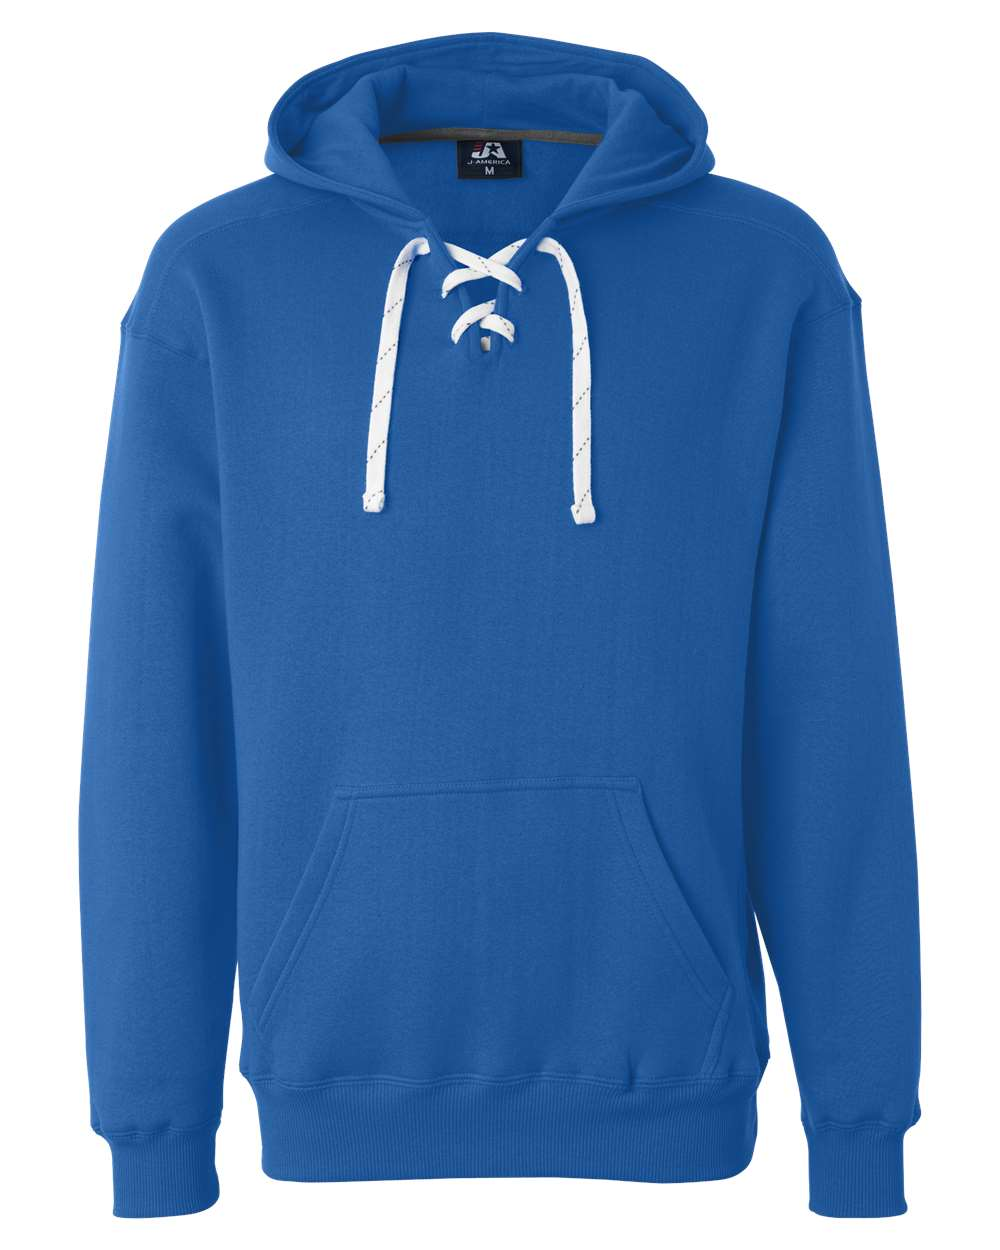 J-America-Mens-Blank-Sport-Lace-Hooded-Sweatshirt-8830-up-to-3XL thumbnail 24